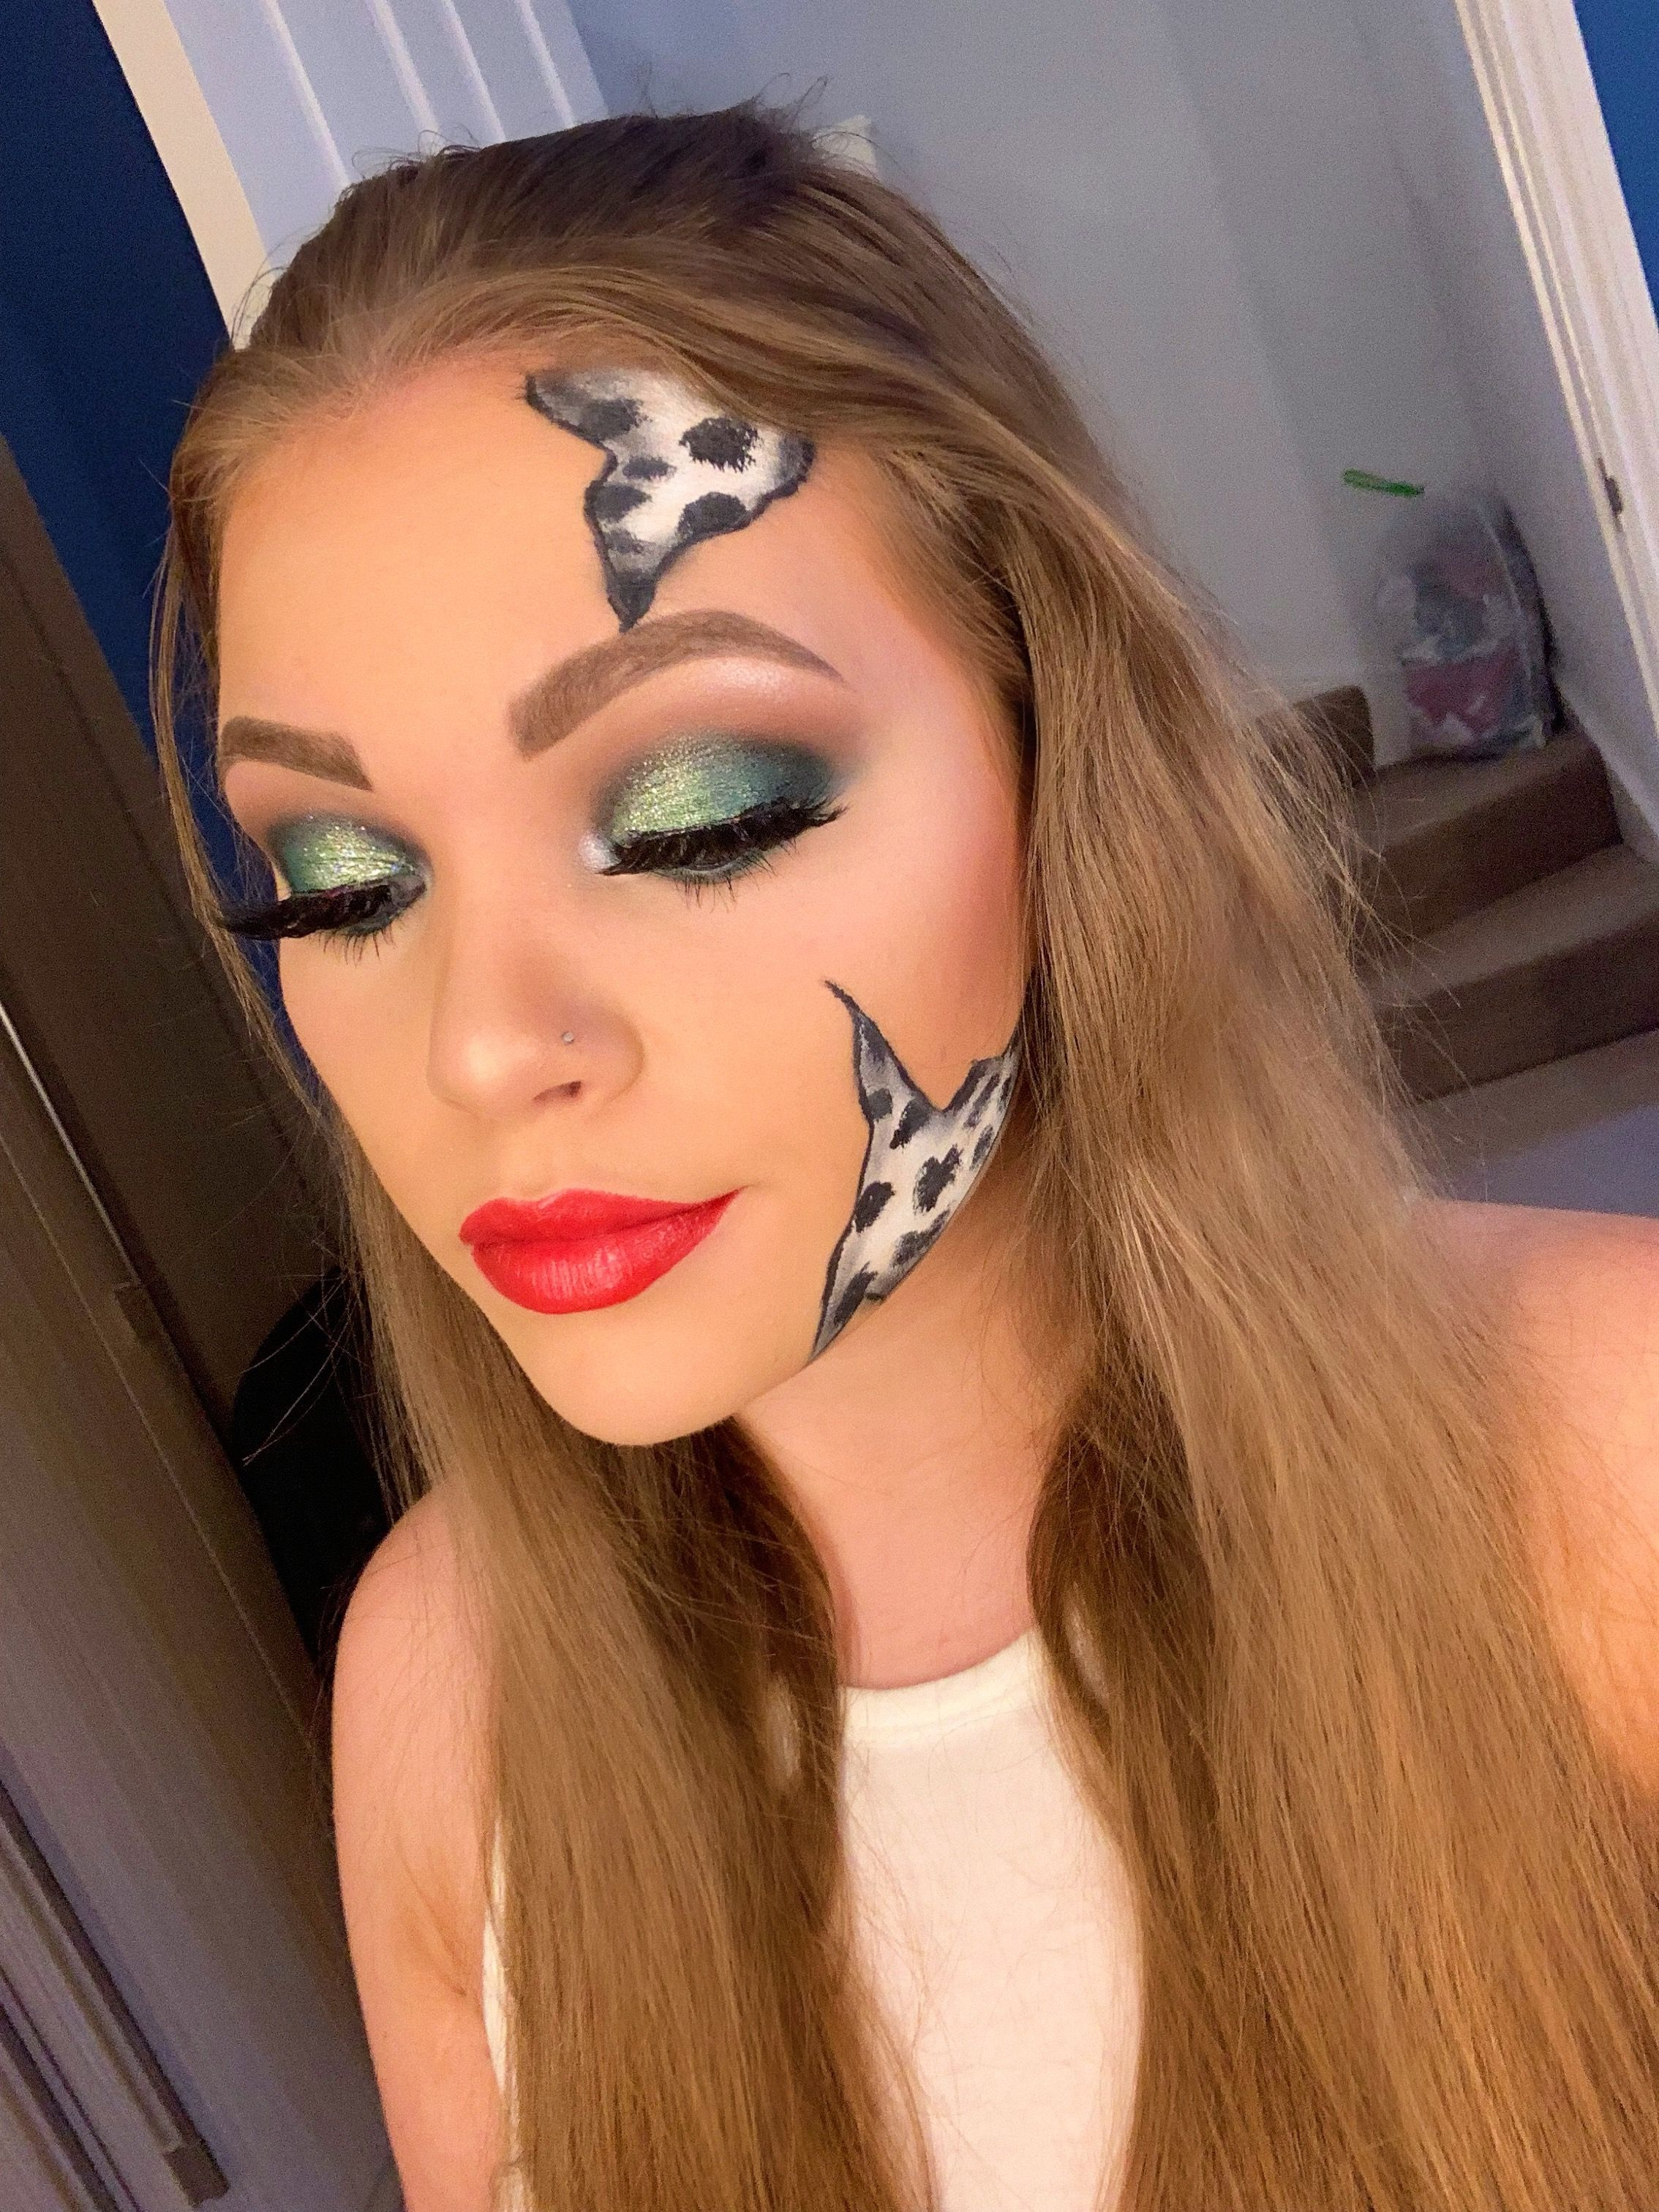 inspired by sadieshill ,, using morphe 35B palette and